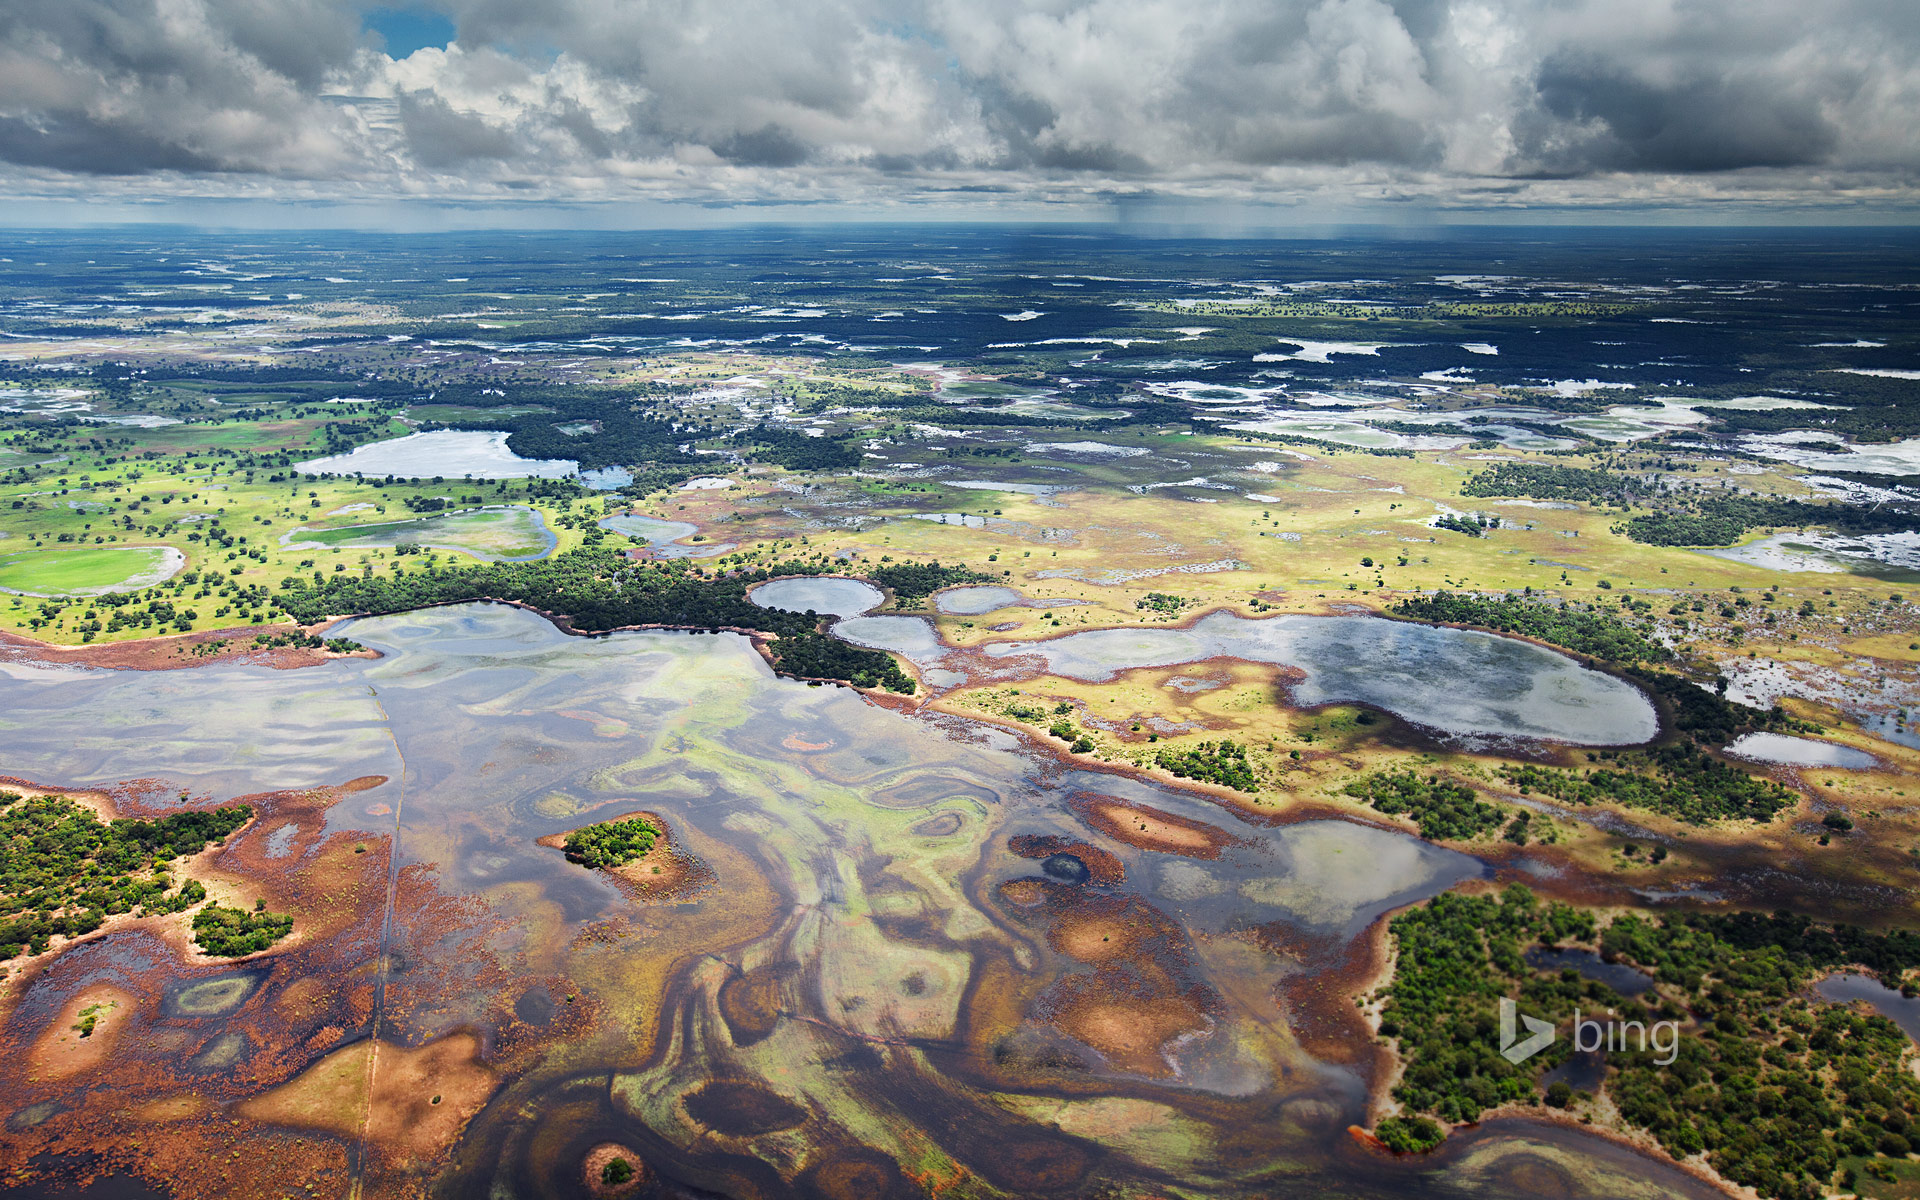 Flood plains in the Pantanal, Brazil